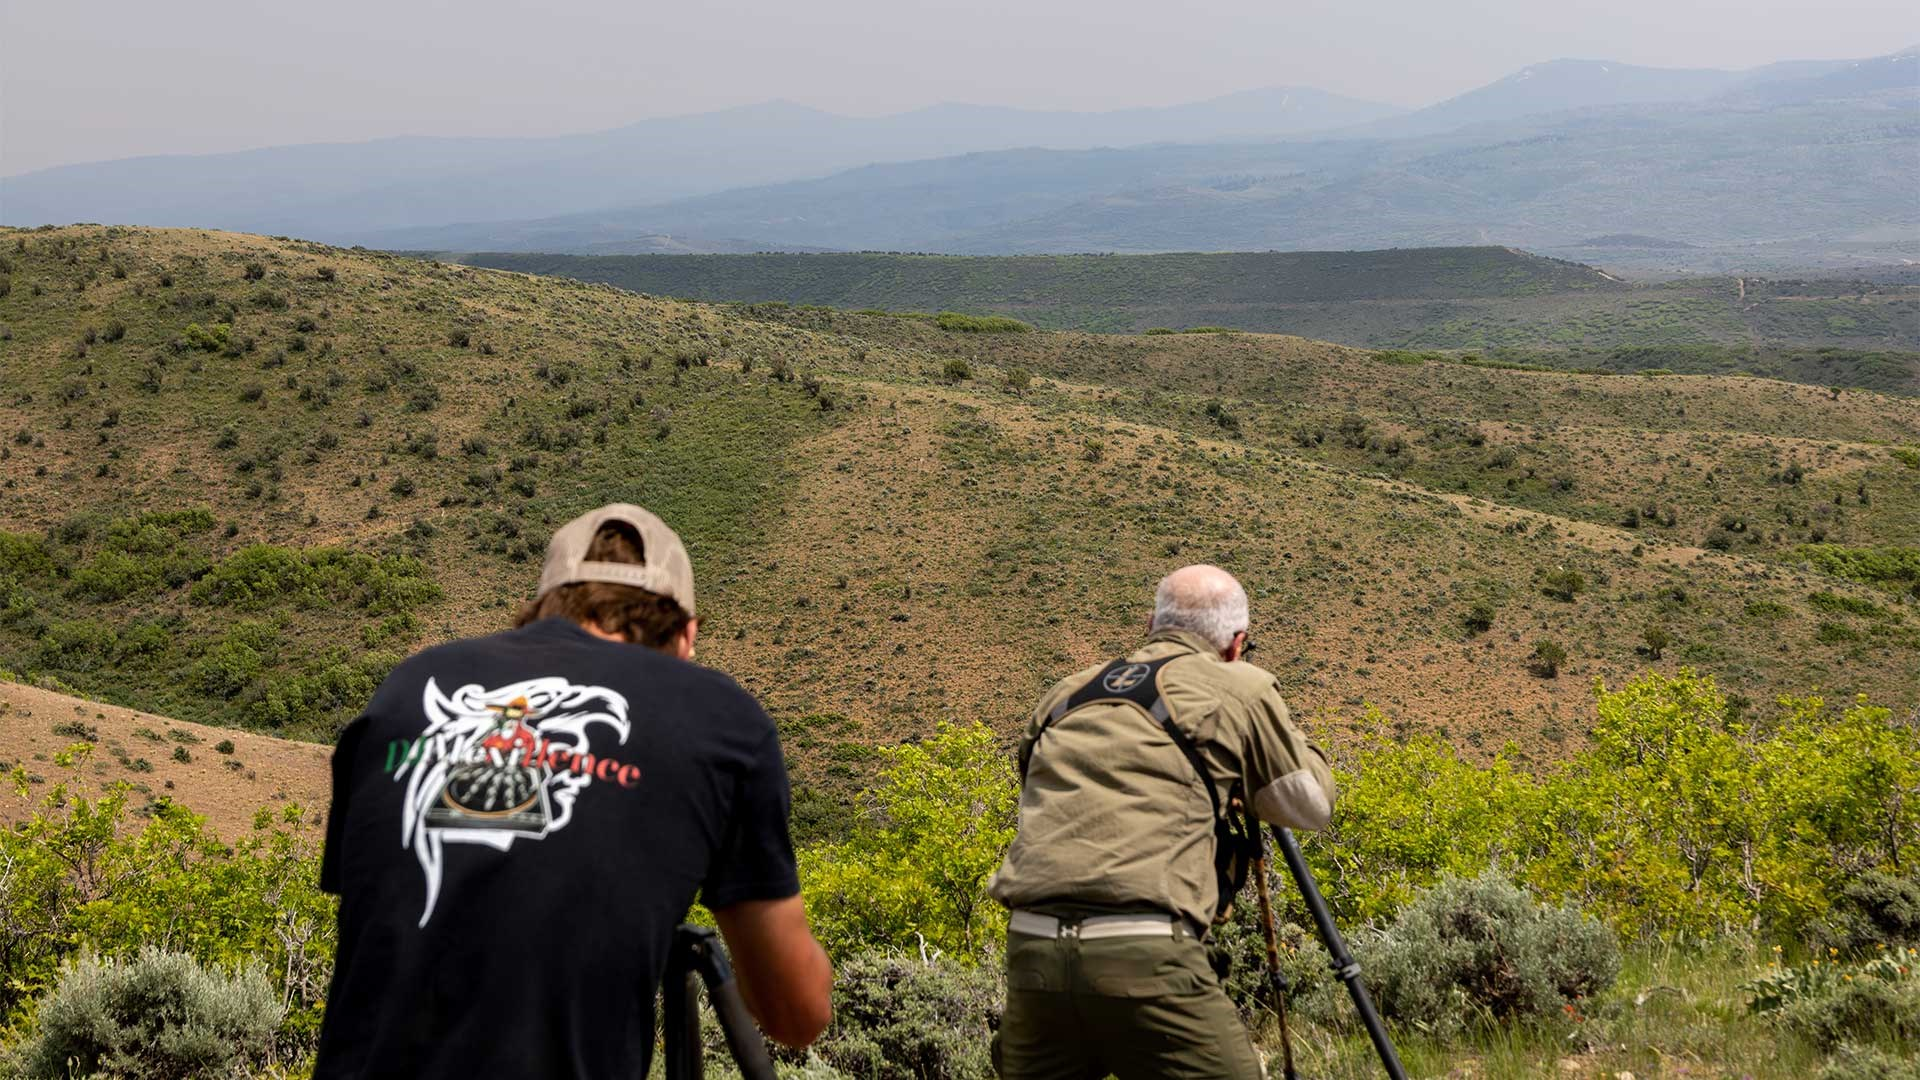 A shooter aims his rifle across mountain ridges while a spotter mounts his spotting scope in the foreground.